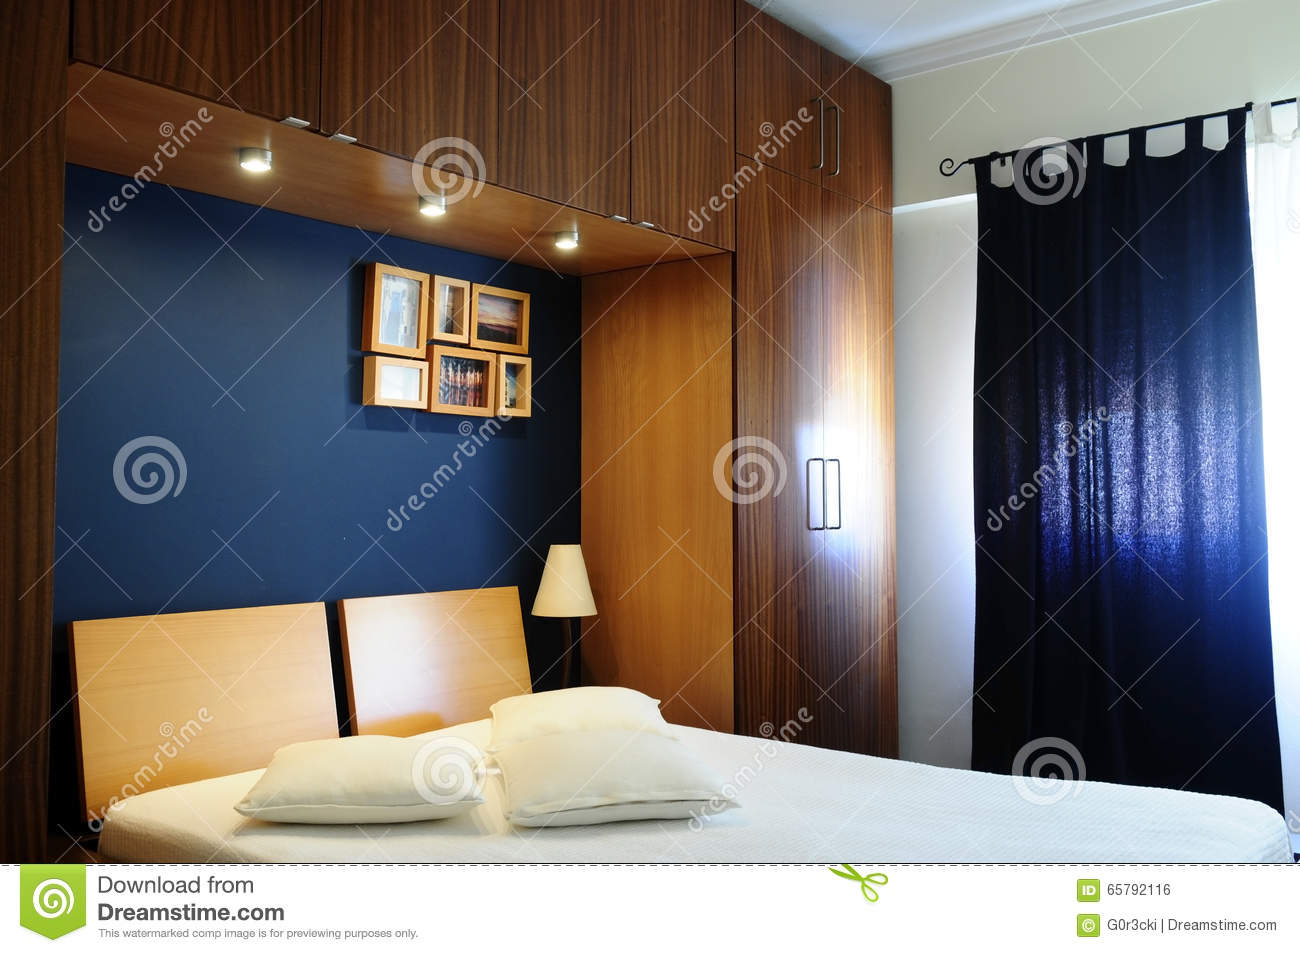 Empty Bed Room With Dark Navy Blue Wall And Wooden